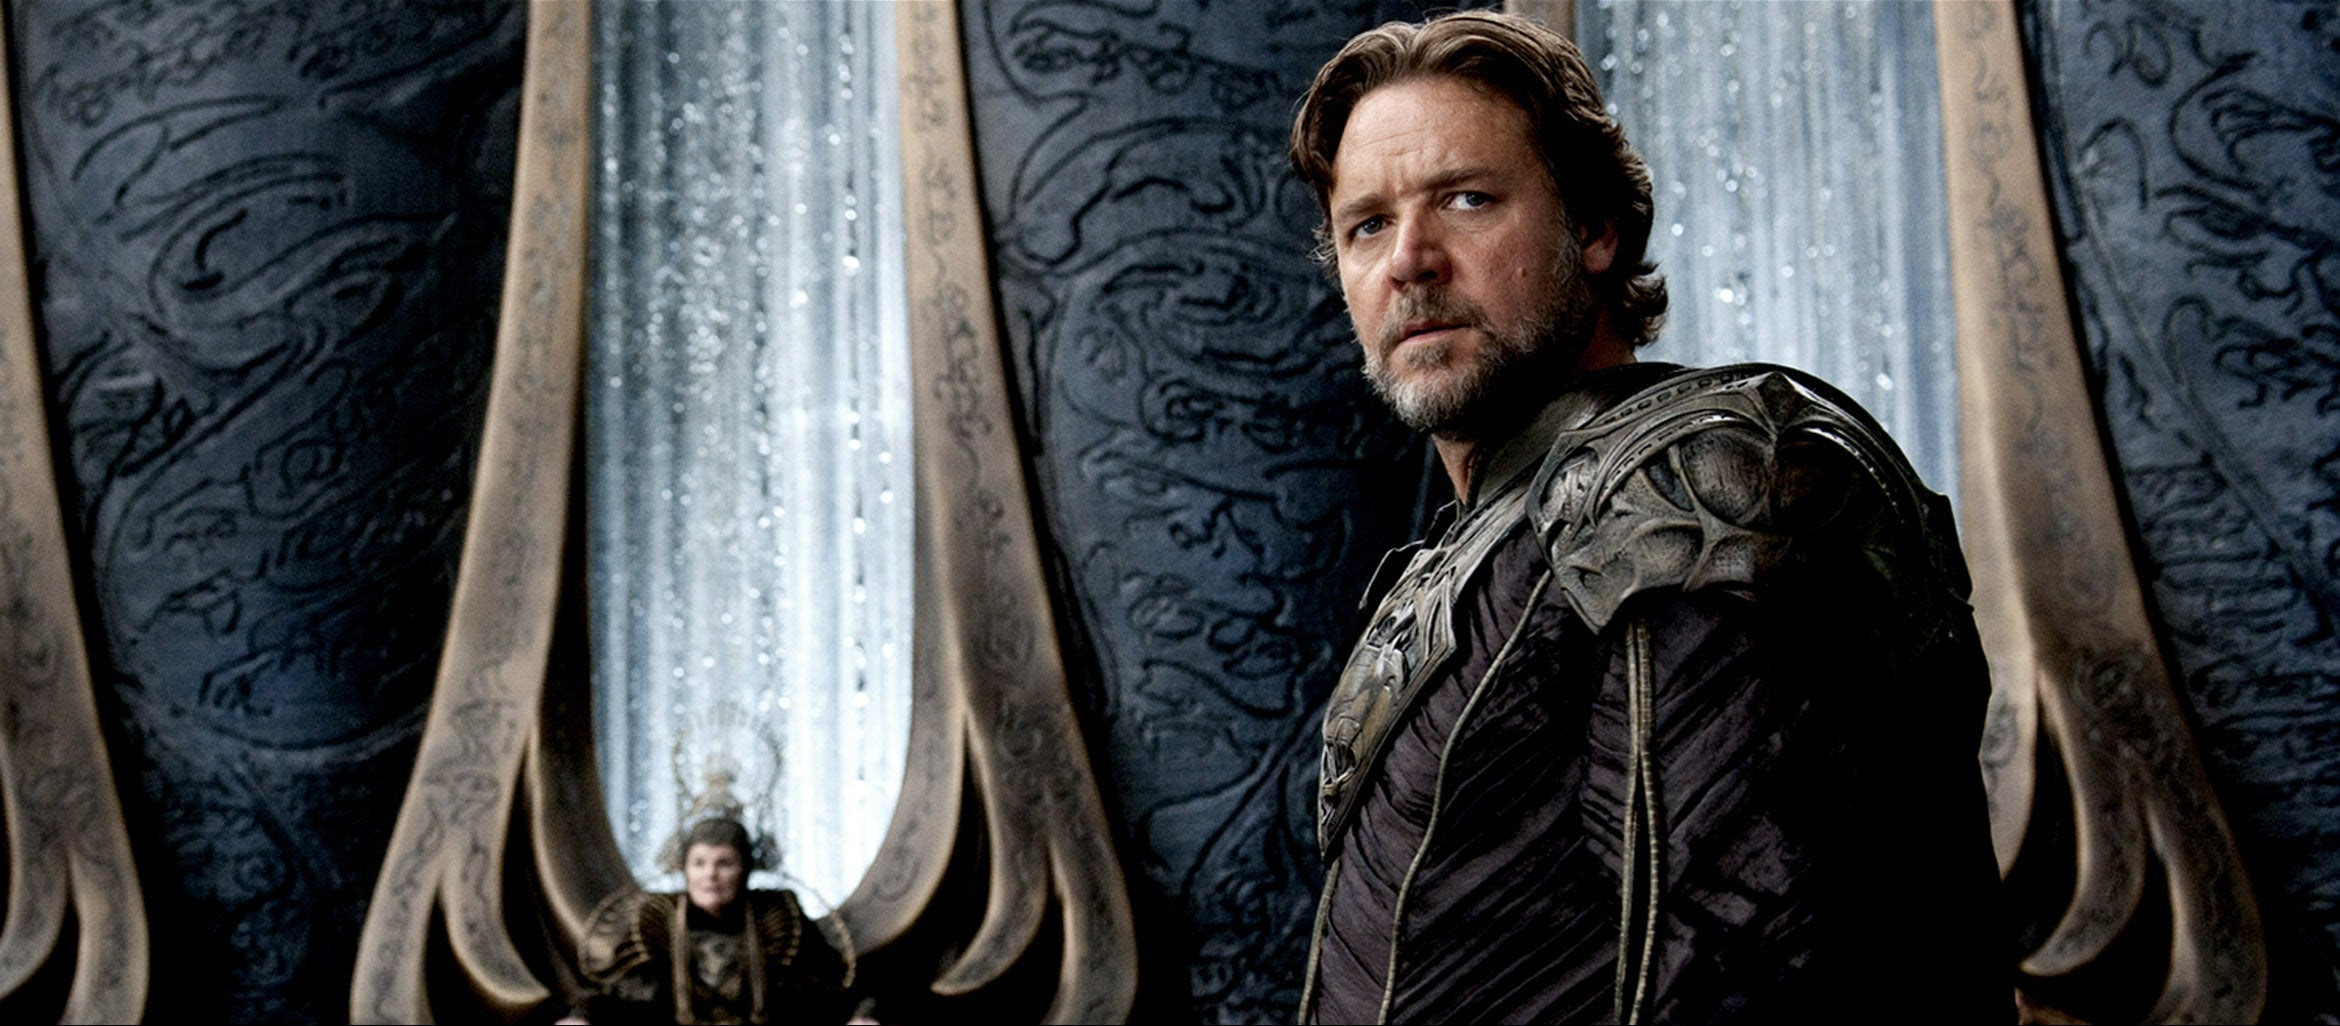 Man of Steel Prequel? Russell Crowe Says Talk to Legendary